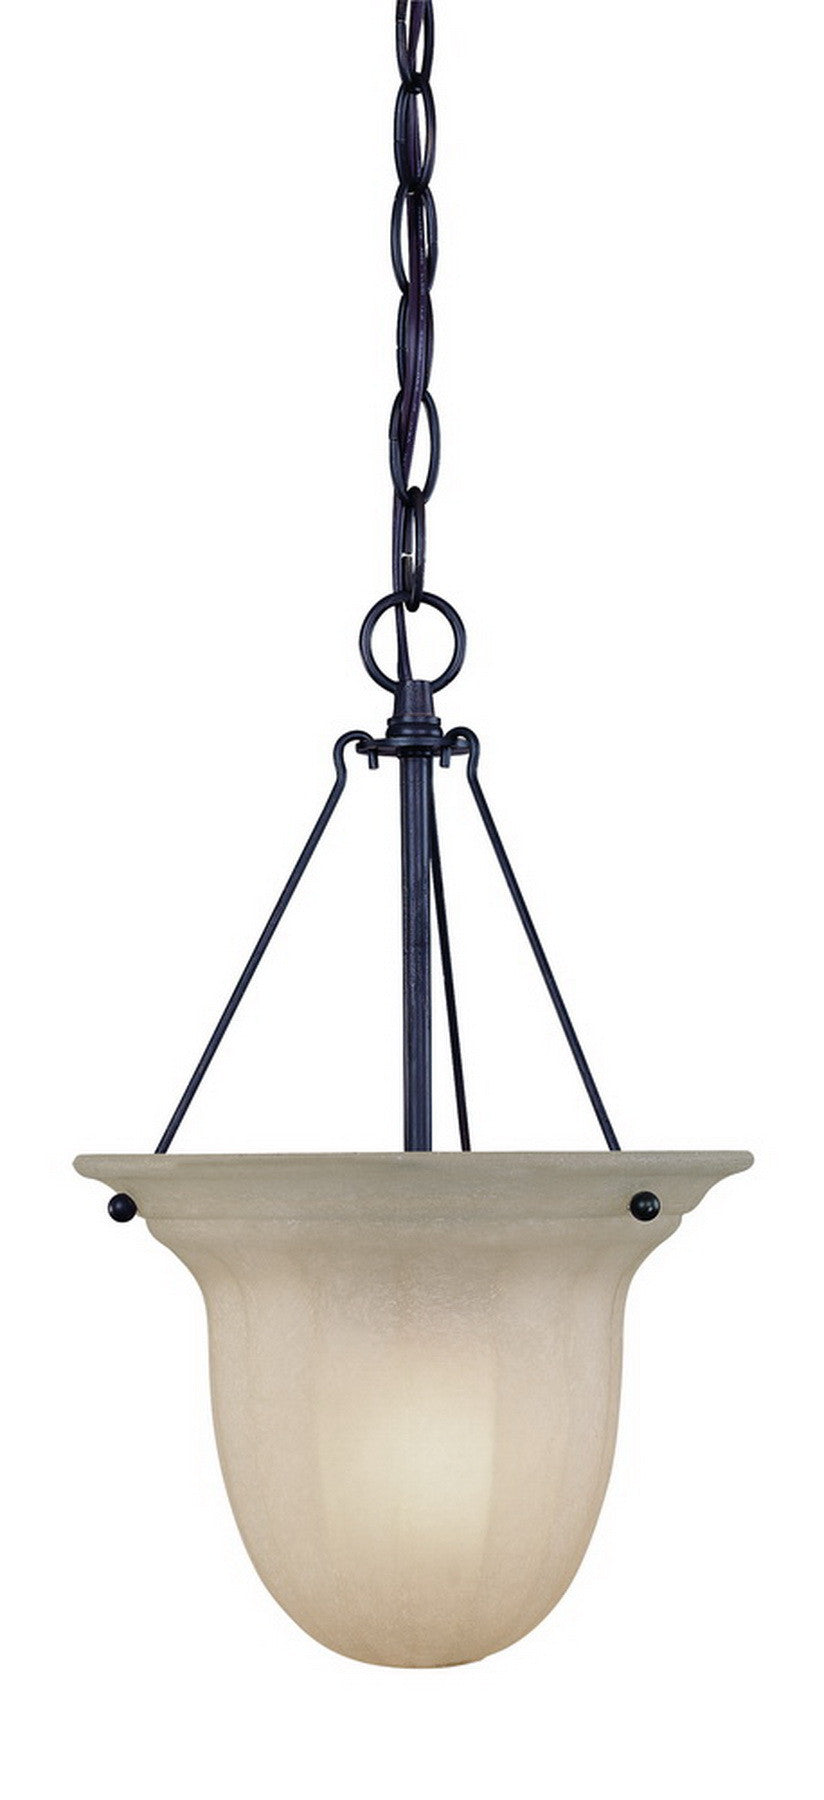 Buy 661-78 Dolan Designs Richland 1 Light Pendant Bolivian From LightingOriginals.ca